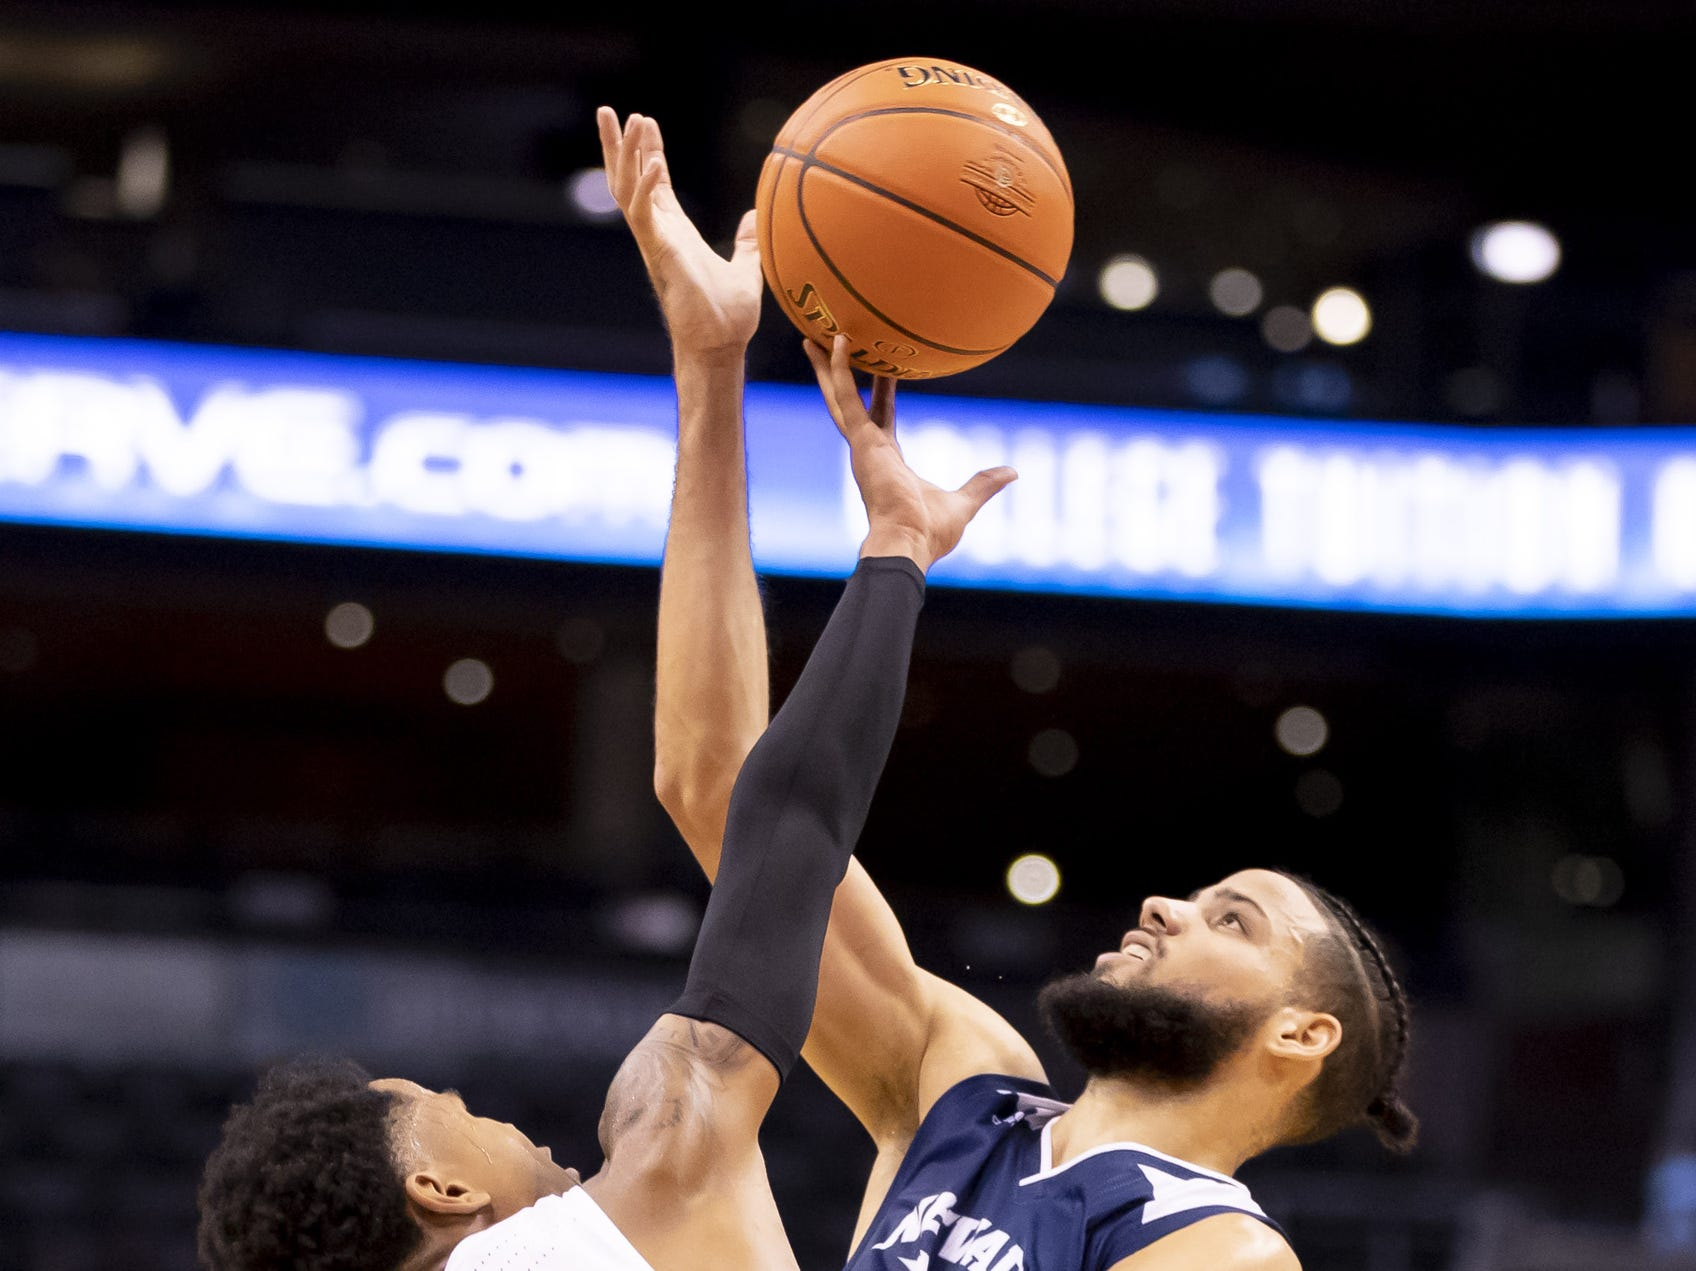 Guard Damari Milstead (11) of the Grand Canyon Antelopes and forward Caleb Martin (10) of Nevada Wolf Pack reach for a pass during the 2018 Jerry Colangelo Classic at Talking Stick Resort Arena on Sunday, December 9, 2018 in Phoenix, Arizona.